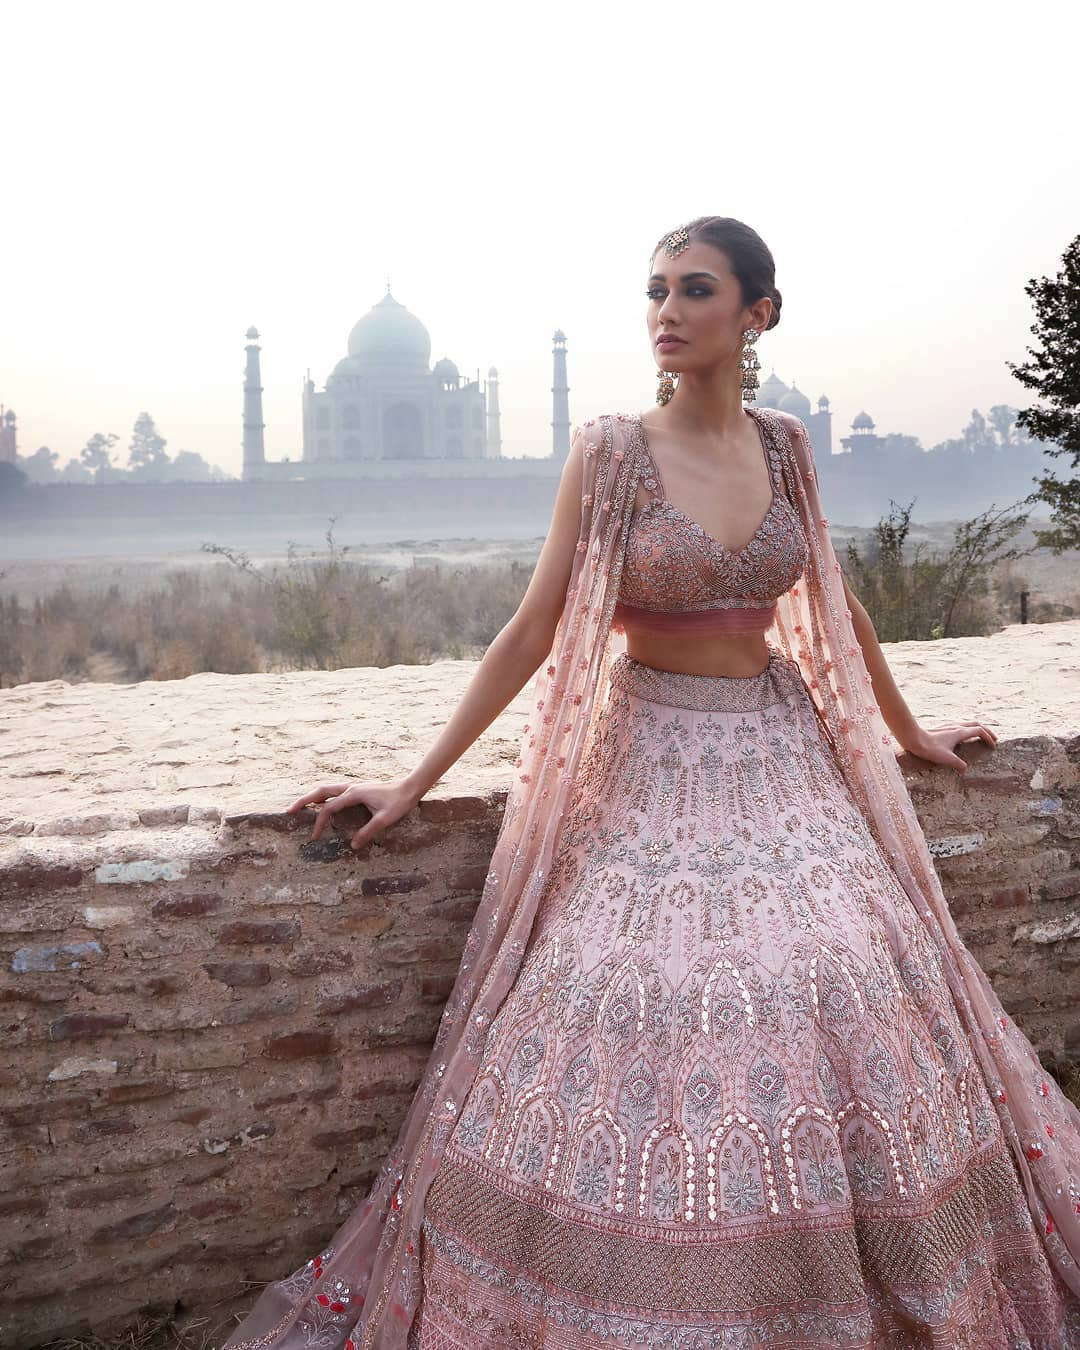 Designer lehenga: Light Lehenga Designs for Bride & Bridesmaid